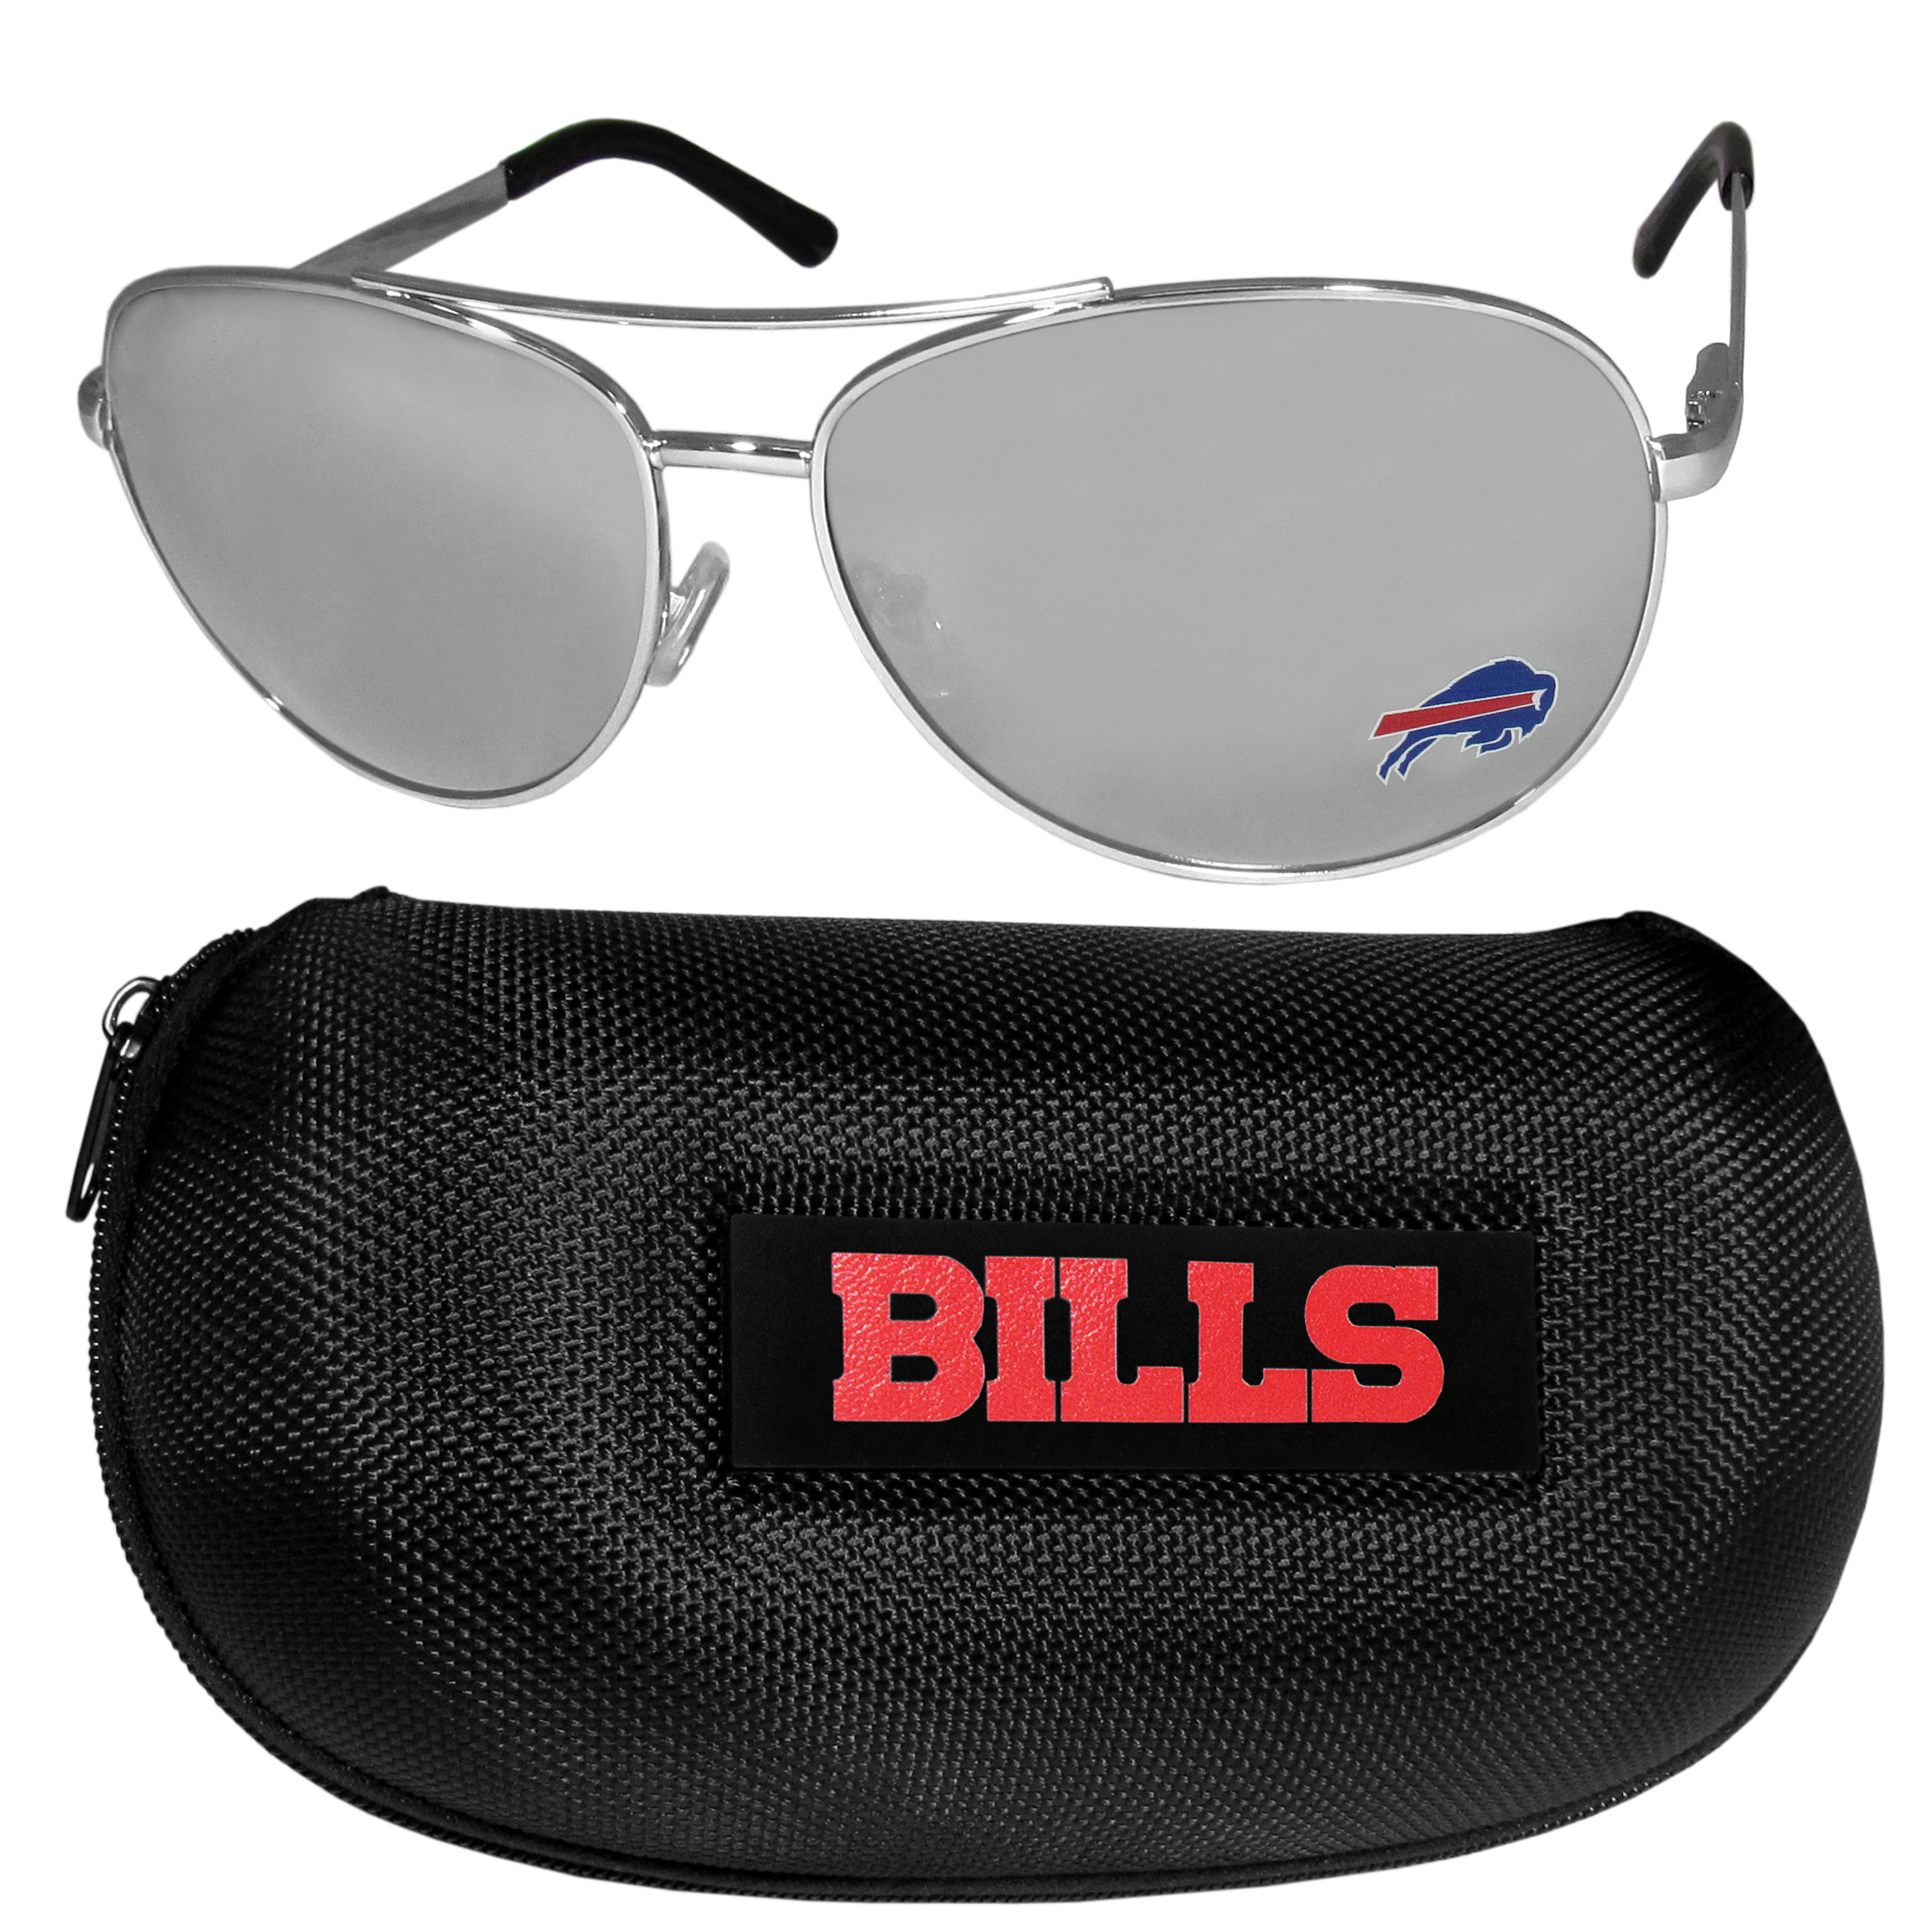 Buffalo Bills Aviator Sunglasses and Zippered Carrying Case - Aviator sunglasses are truly an iconic retro fashion statement that never goes out-of-style. Our Buffalo Bills  aviator sunglasses pair this classic look with your love of the game. The iridium coated lenses reduce glare while driving, boating, golfing and their 100% UVA/UVB rating provides you with the maximum UV protection for all your outdoor activities. A millennial favorite, these affordable designer frames are the perfect eyewear accessory for a sports fan that is looking for high-quality at an affordable price. The durable, flex hinged frames are tough enough for hiking and camping or if you prefer sun bathing by the pool or on the beach these shades will really stand the test of time. The sunglasses come with a hard shell zippered case which has a large team logo on the lid that will make even the most die-hard fan proud!